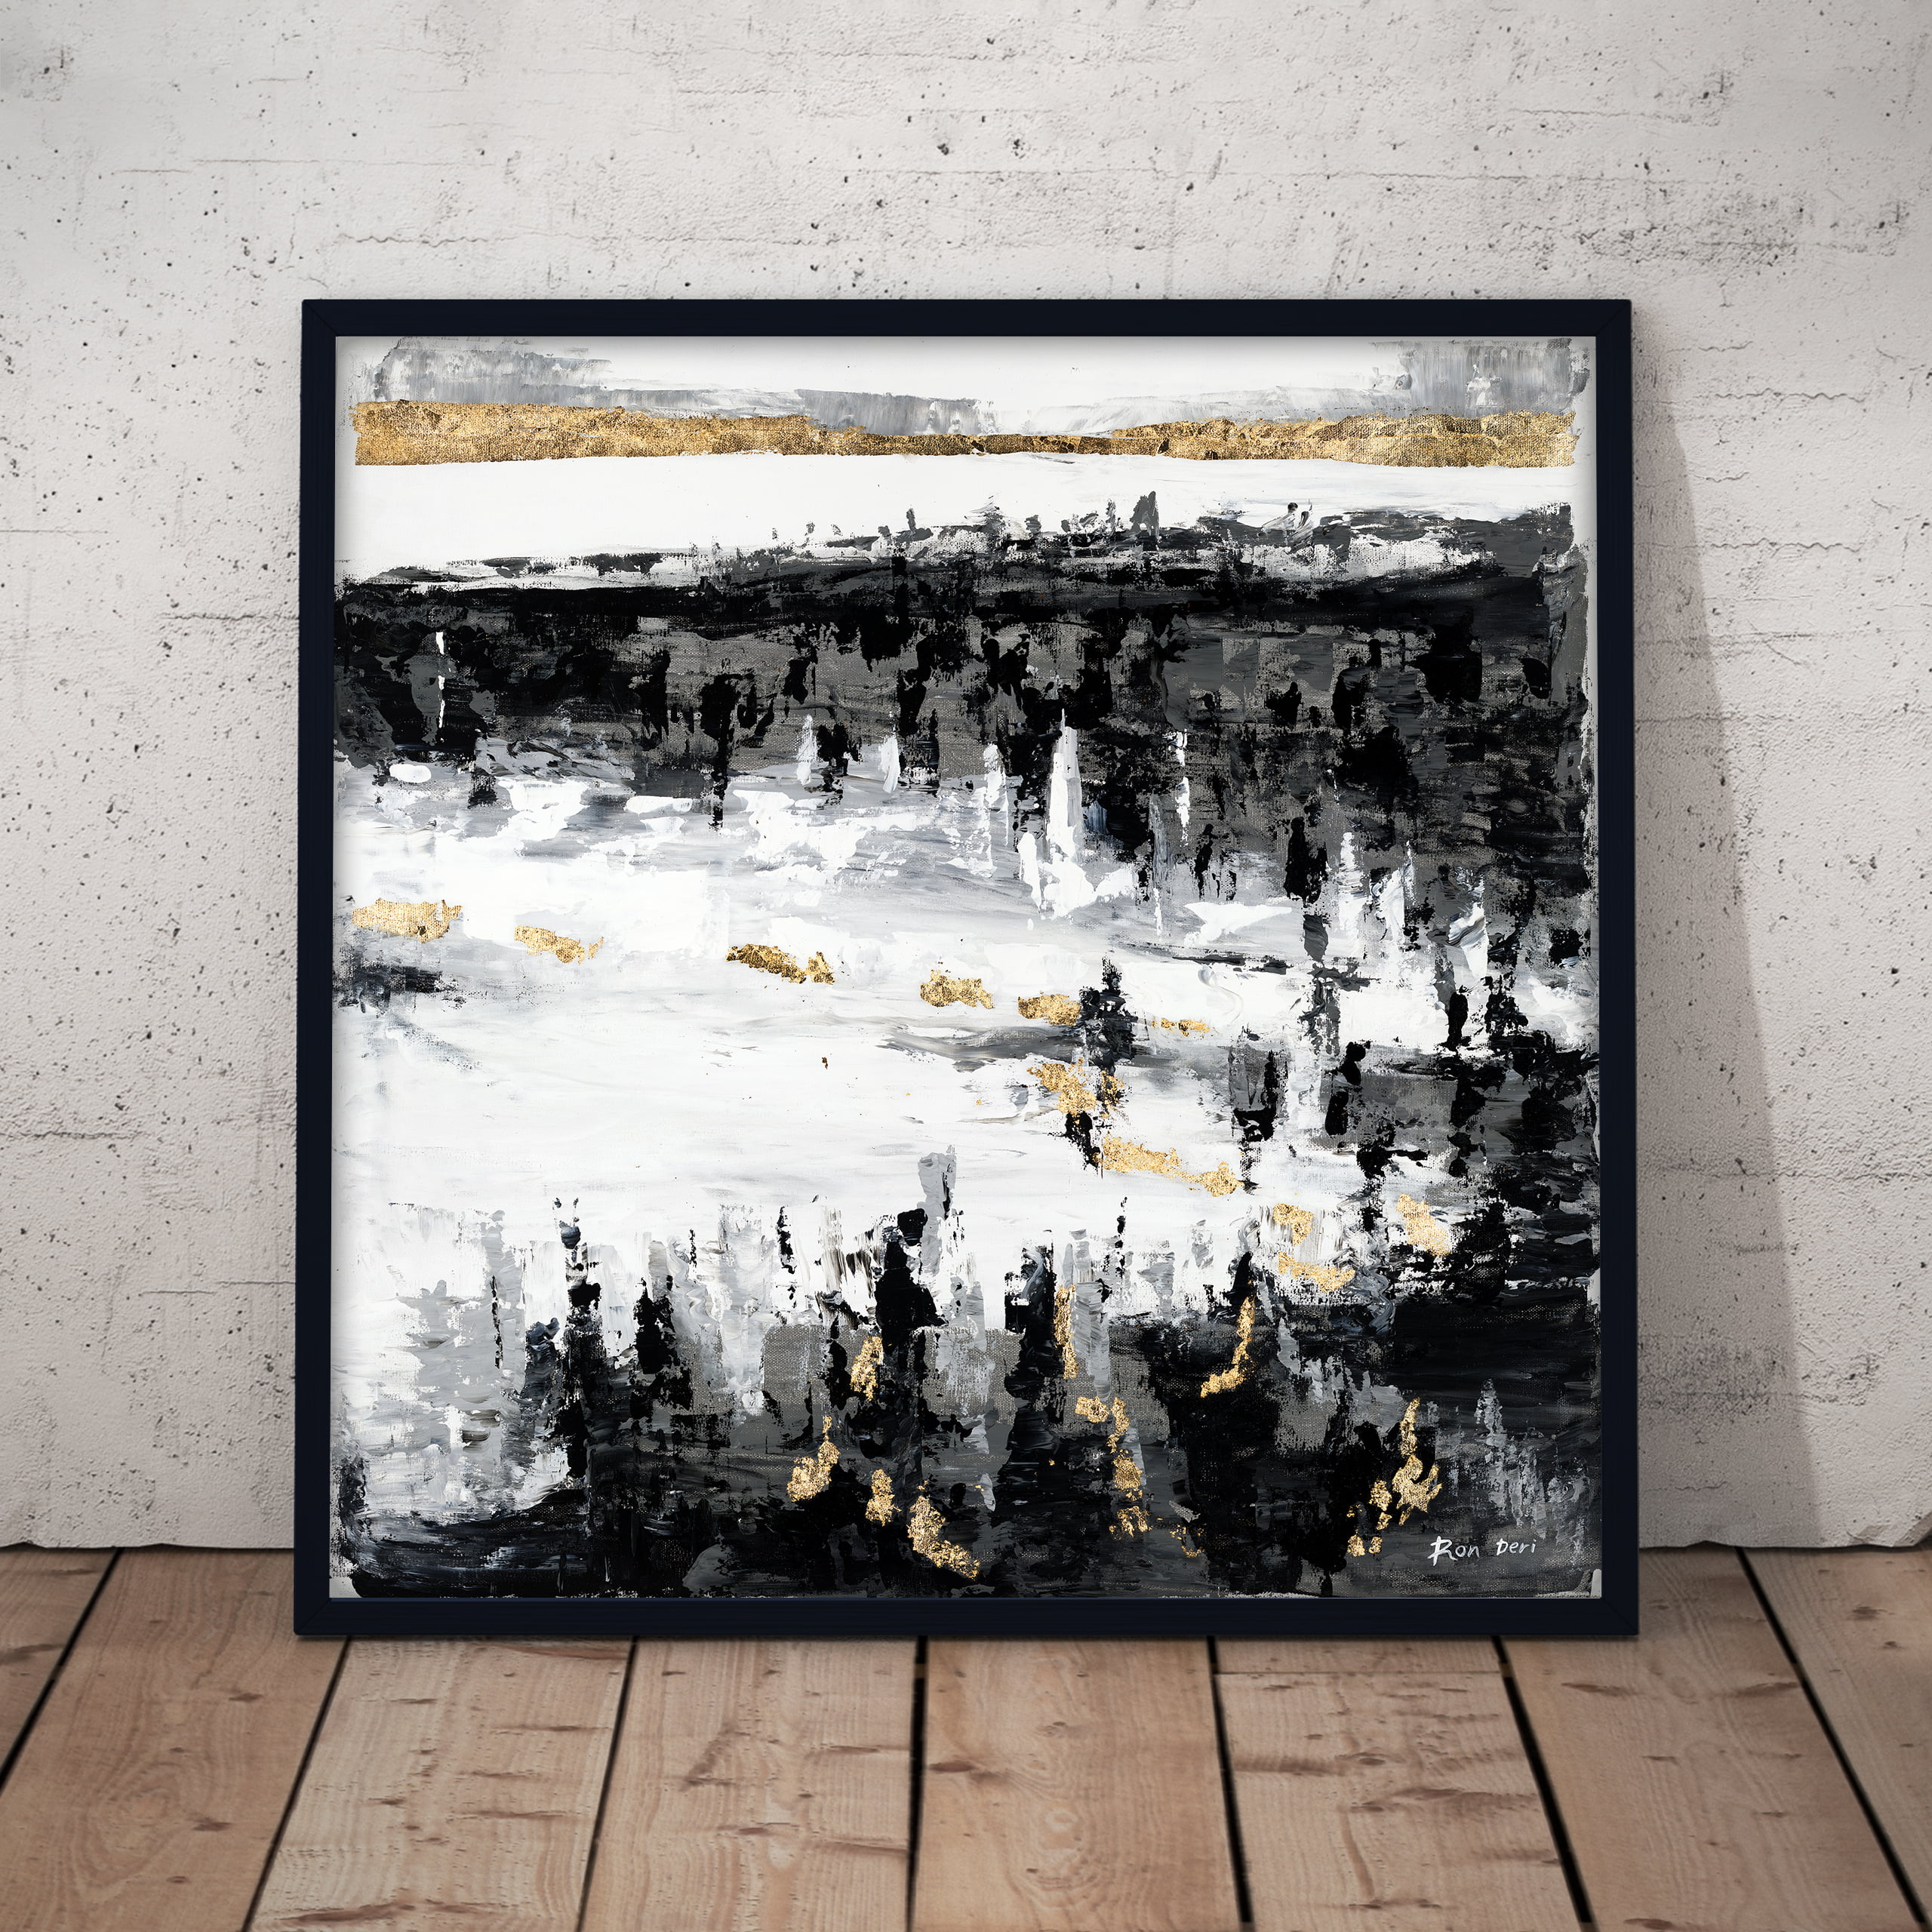 frozen lake - black white and gold abstract art print by ron deri